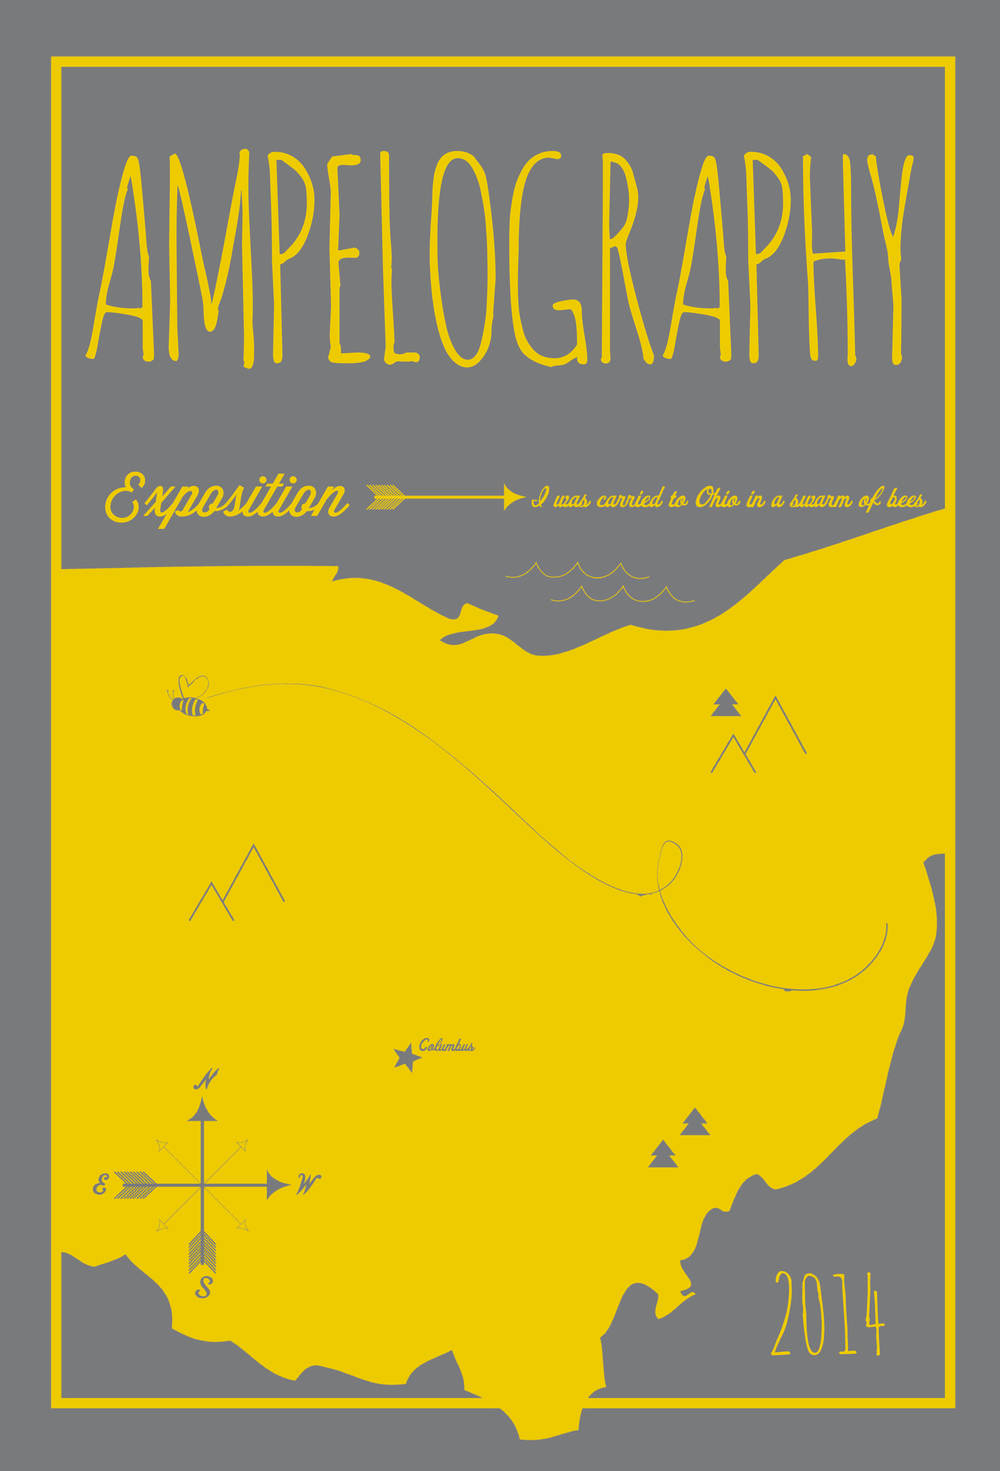 2014 Ampelography trade show invite.jpg